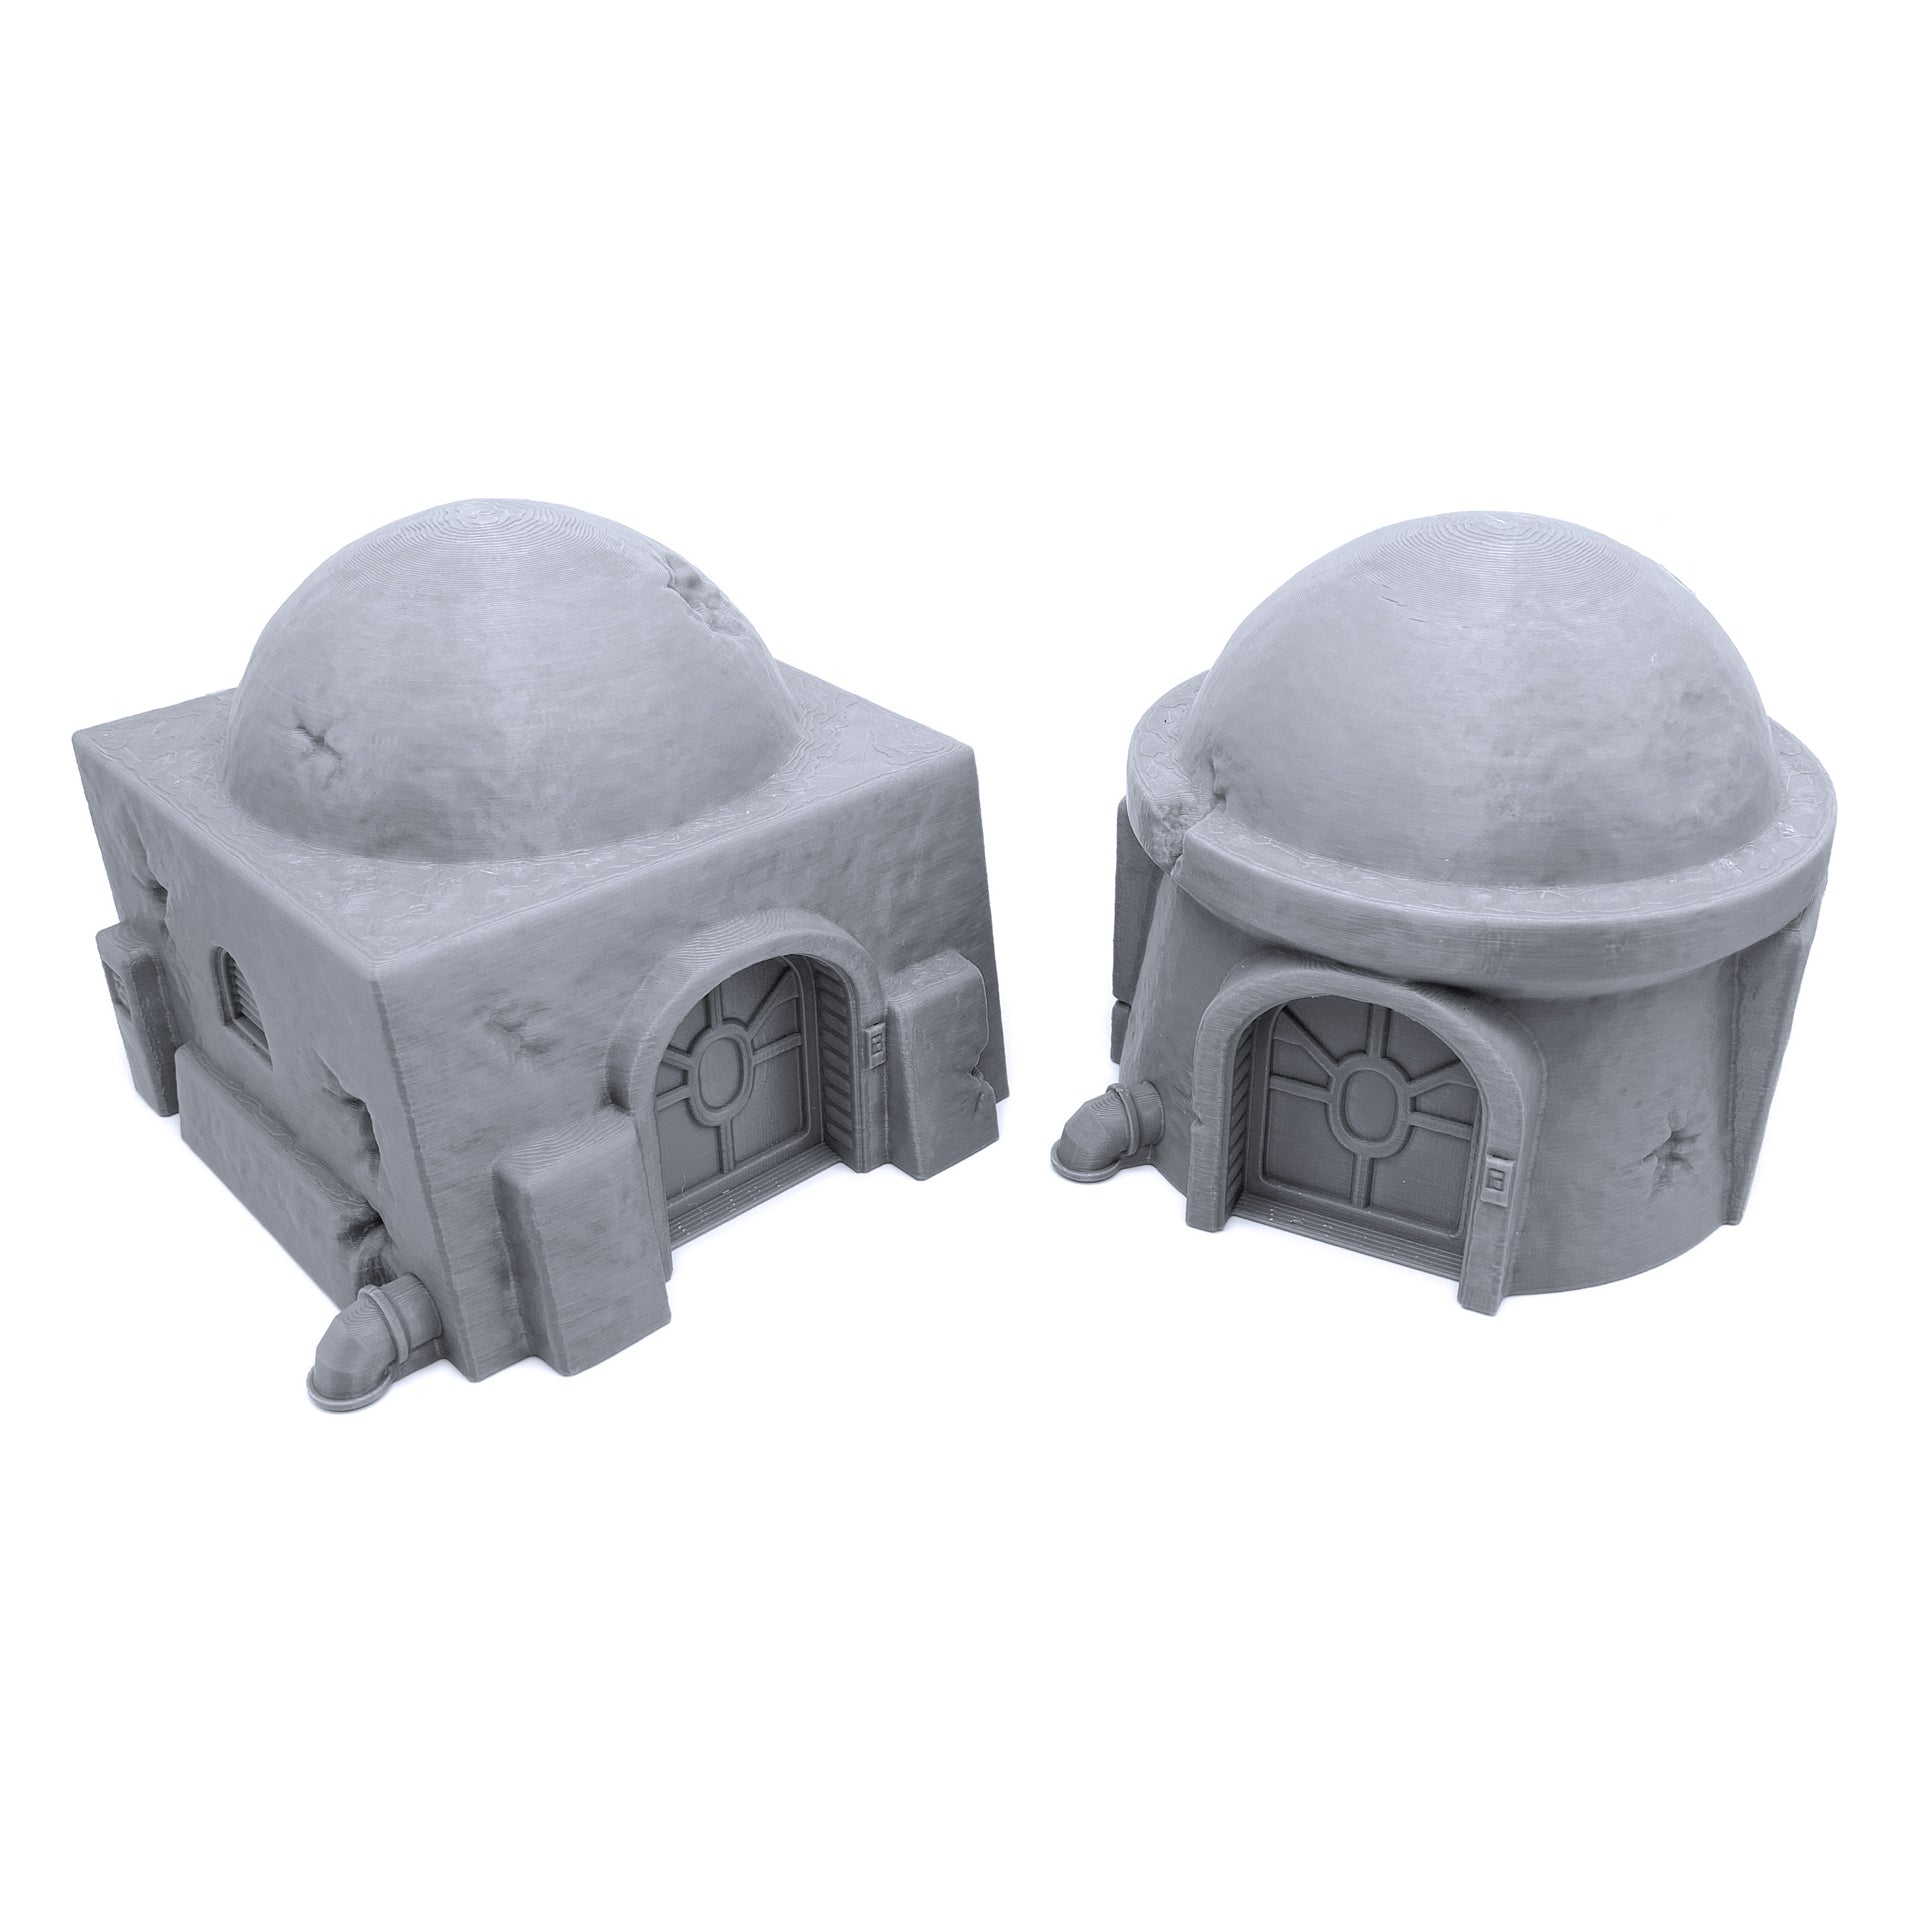 Galactic Legion Desert Planet Huts - EnderToys Terrain